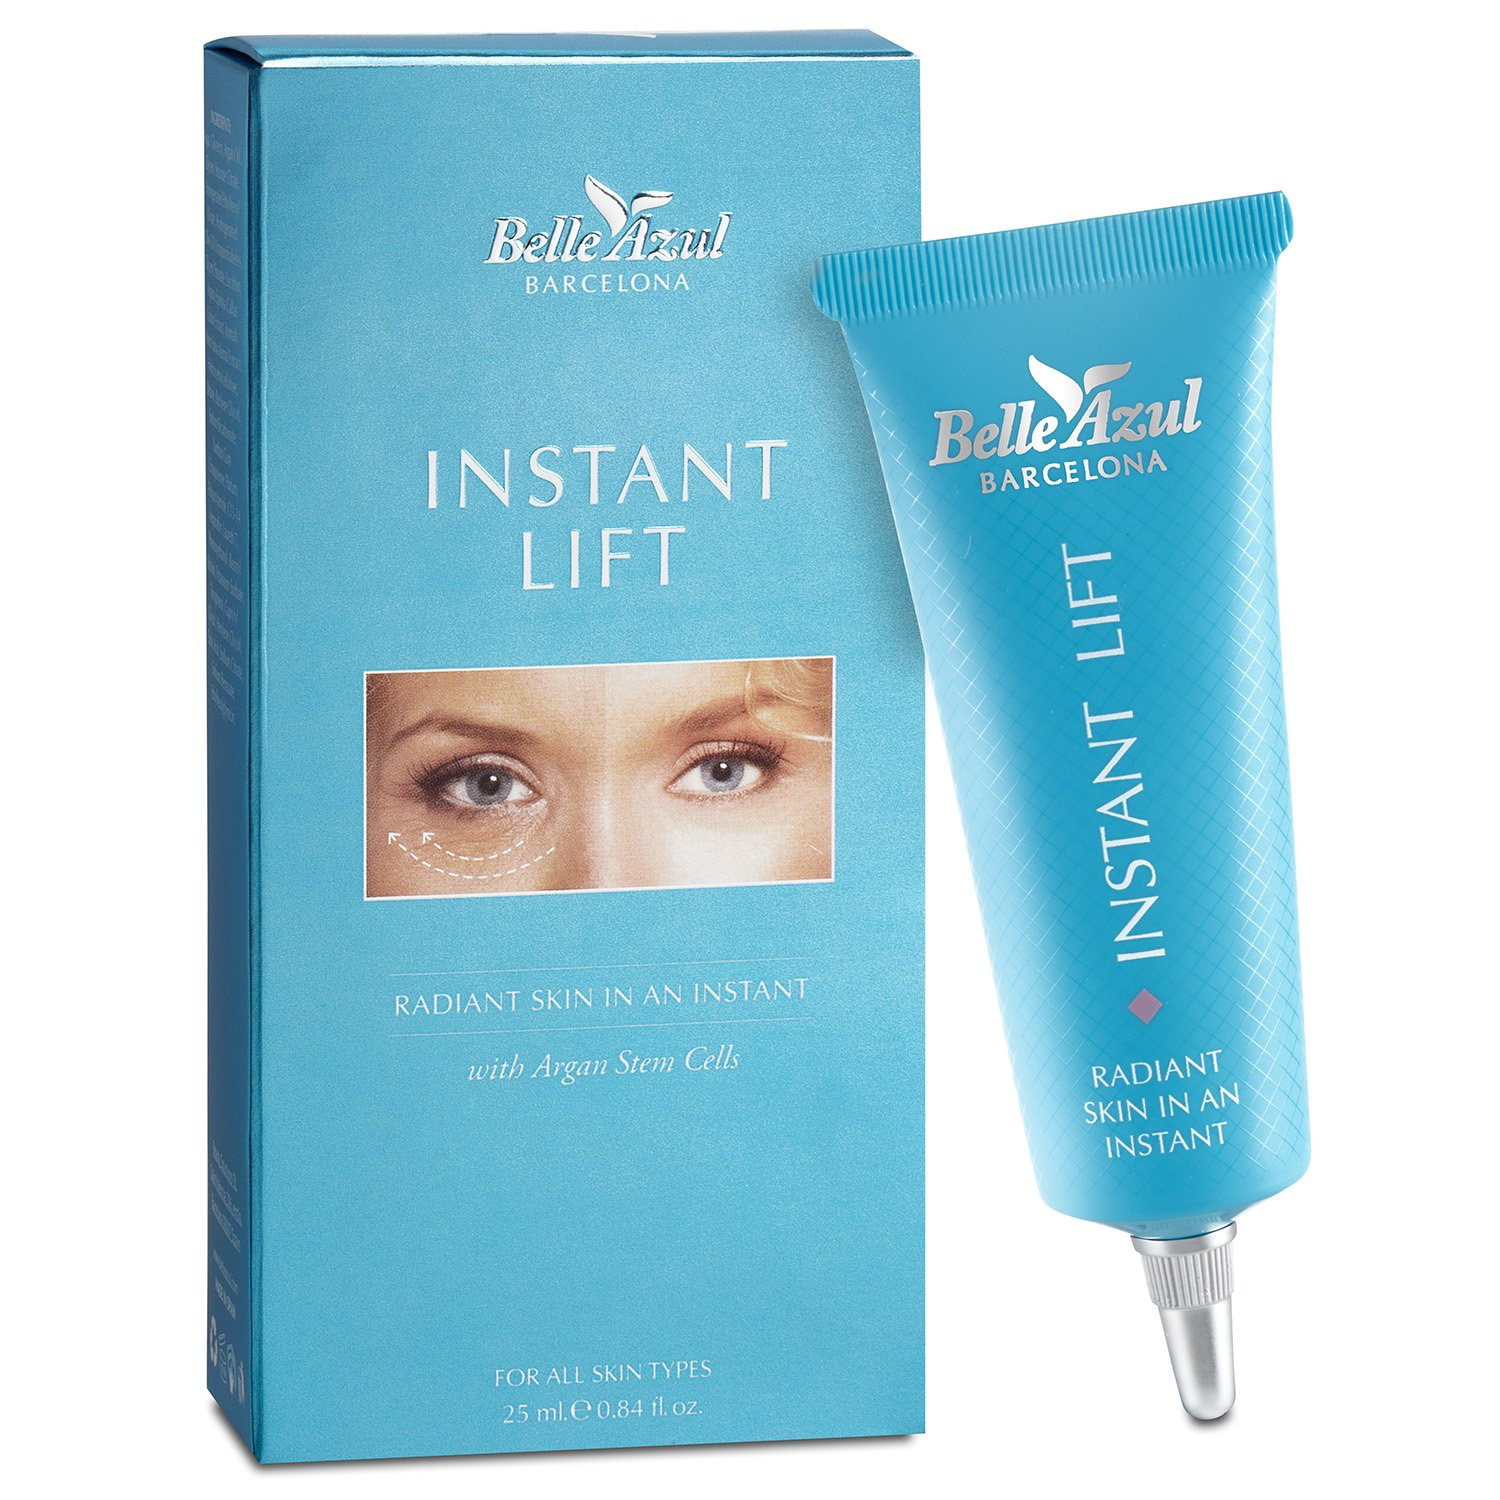 Belle Azul Instant Lift - Anti Wrinkle and Firming Eye Cream Rich in Vitamin E, Fatty Acids and Antioxidants. Paraben and Phthalates Free 25 ml. / 0.84 fl.oz Simon & Tom